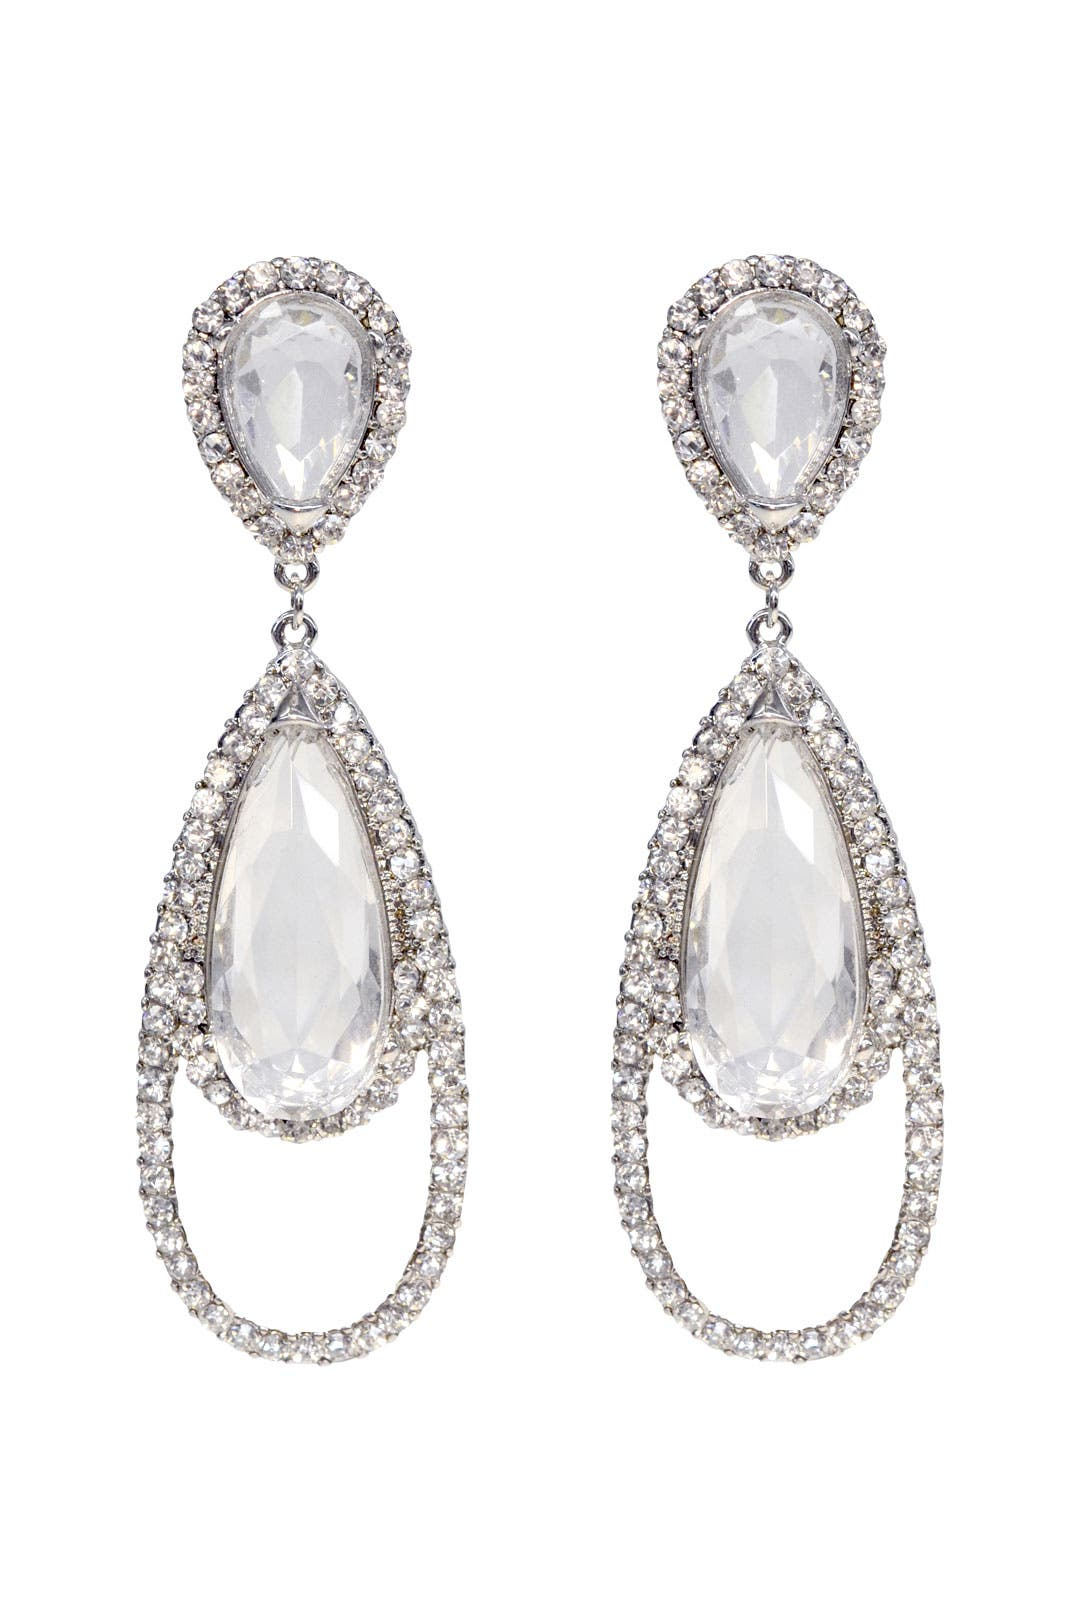 Haute Couture Crystal Earrings by Kenneth Jay Lane